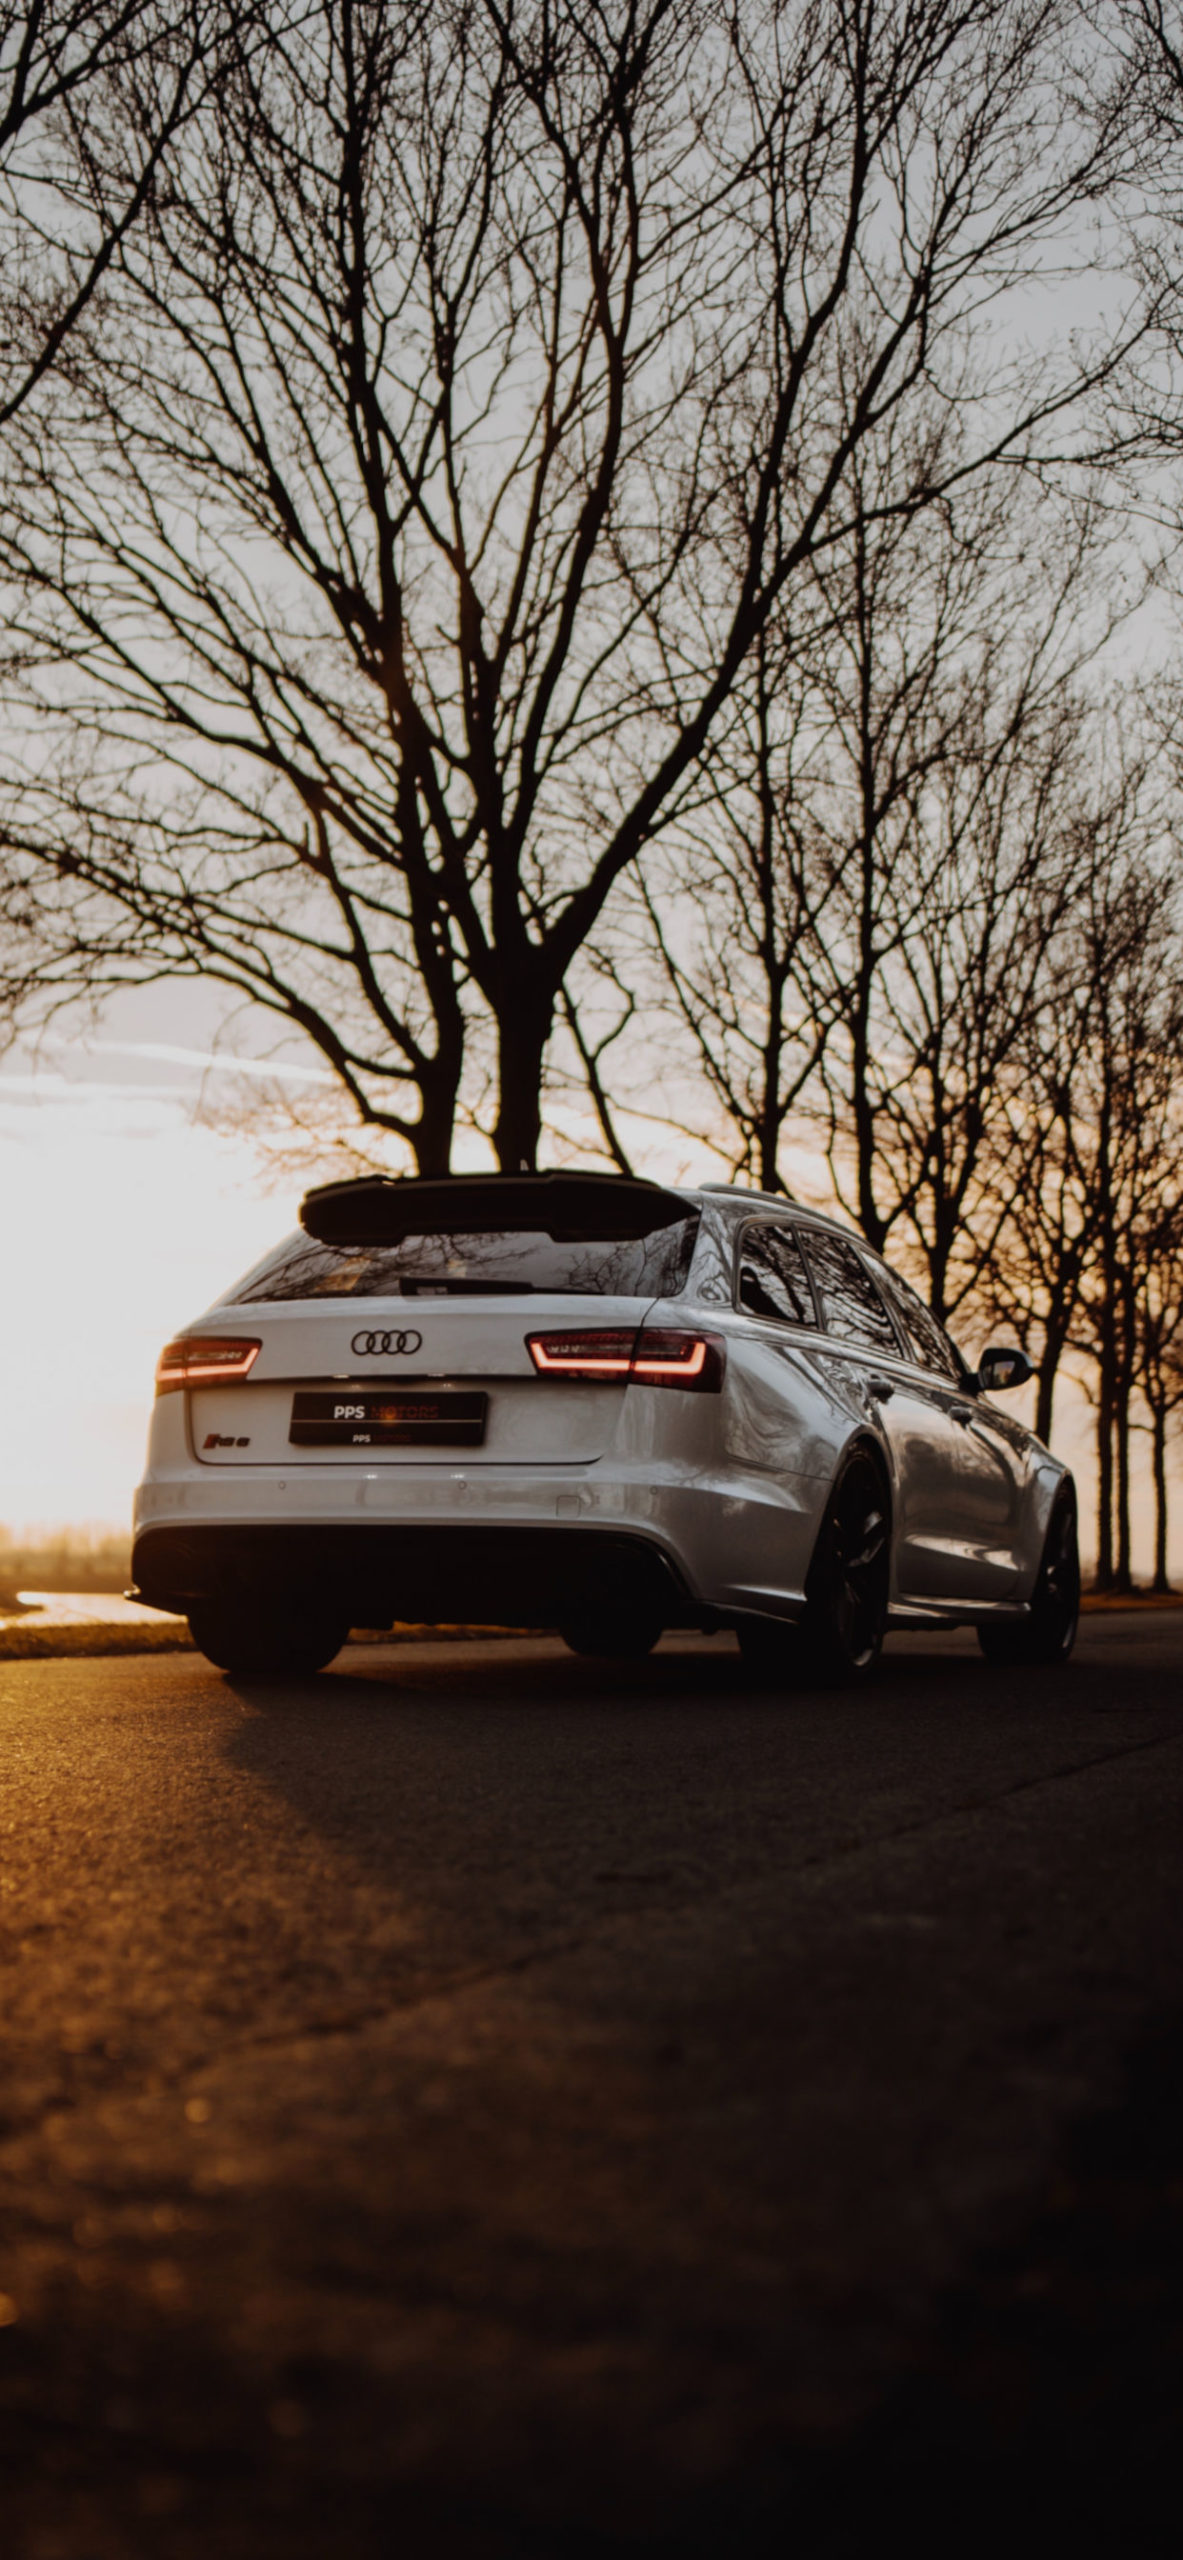 iPhone wallpapers car trees sunset scaled Car